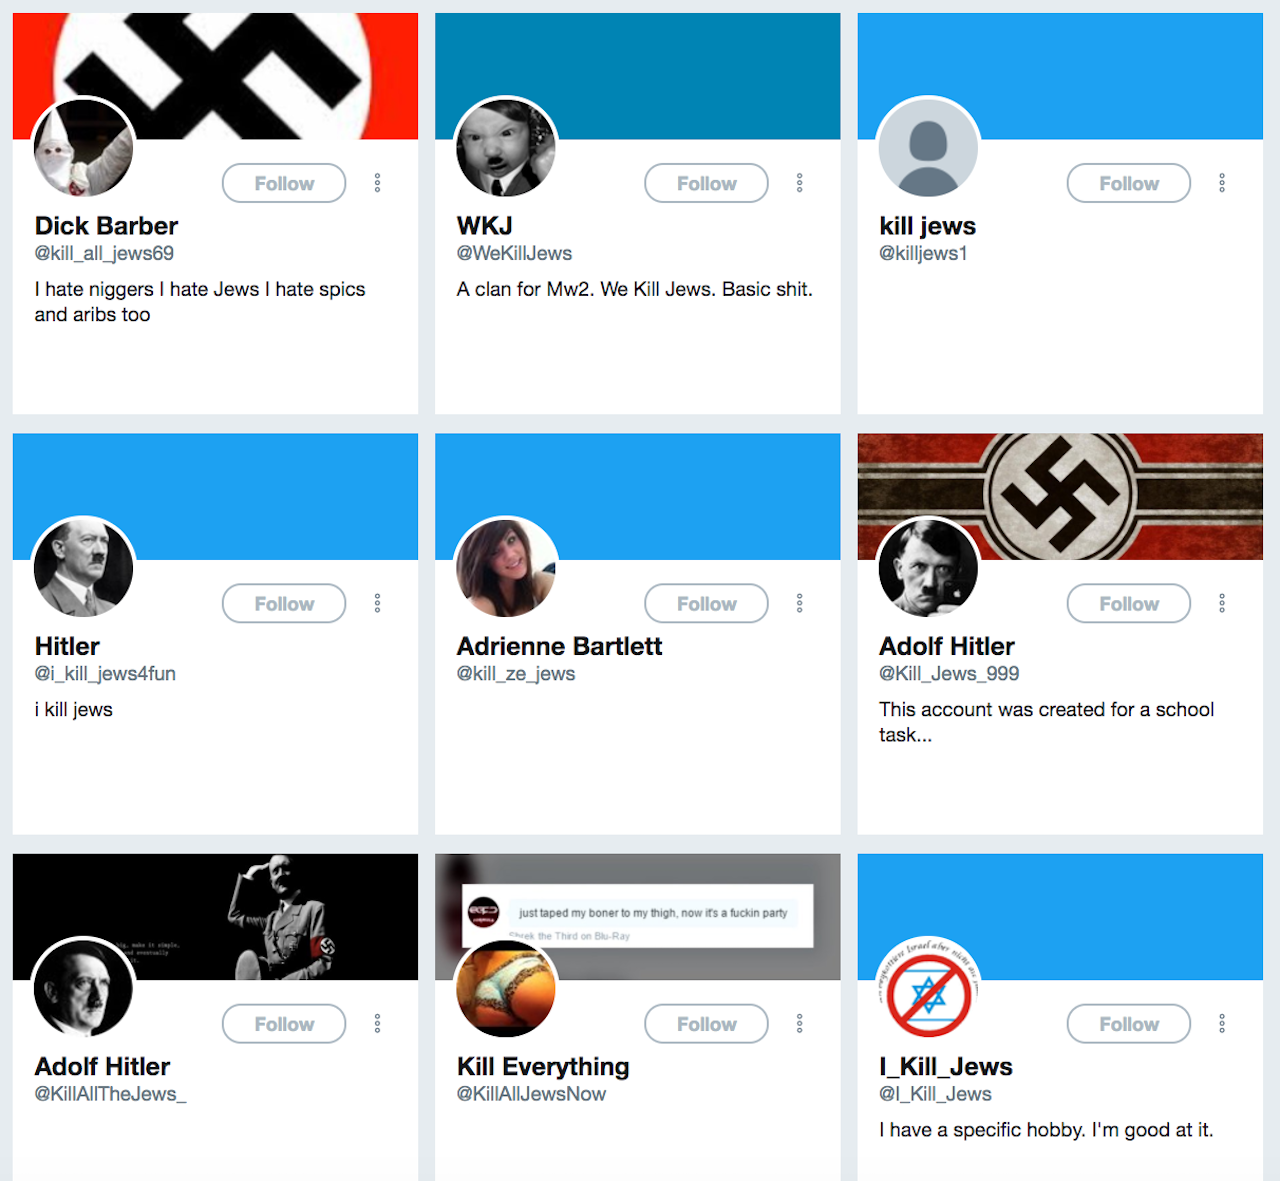 Twitter accounts that have not been banned as of this writing.